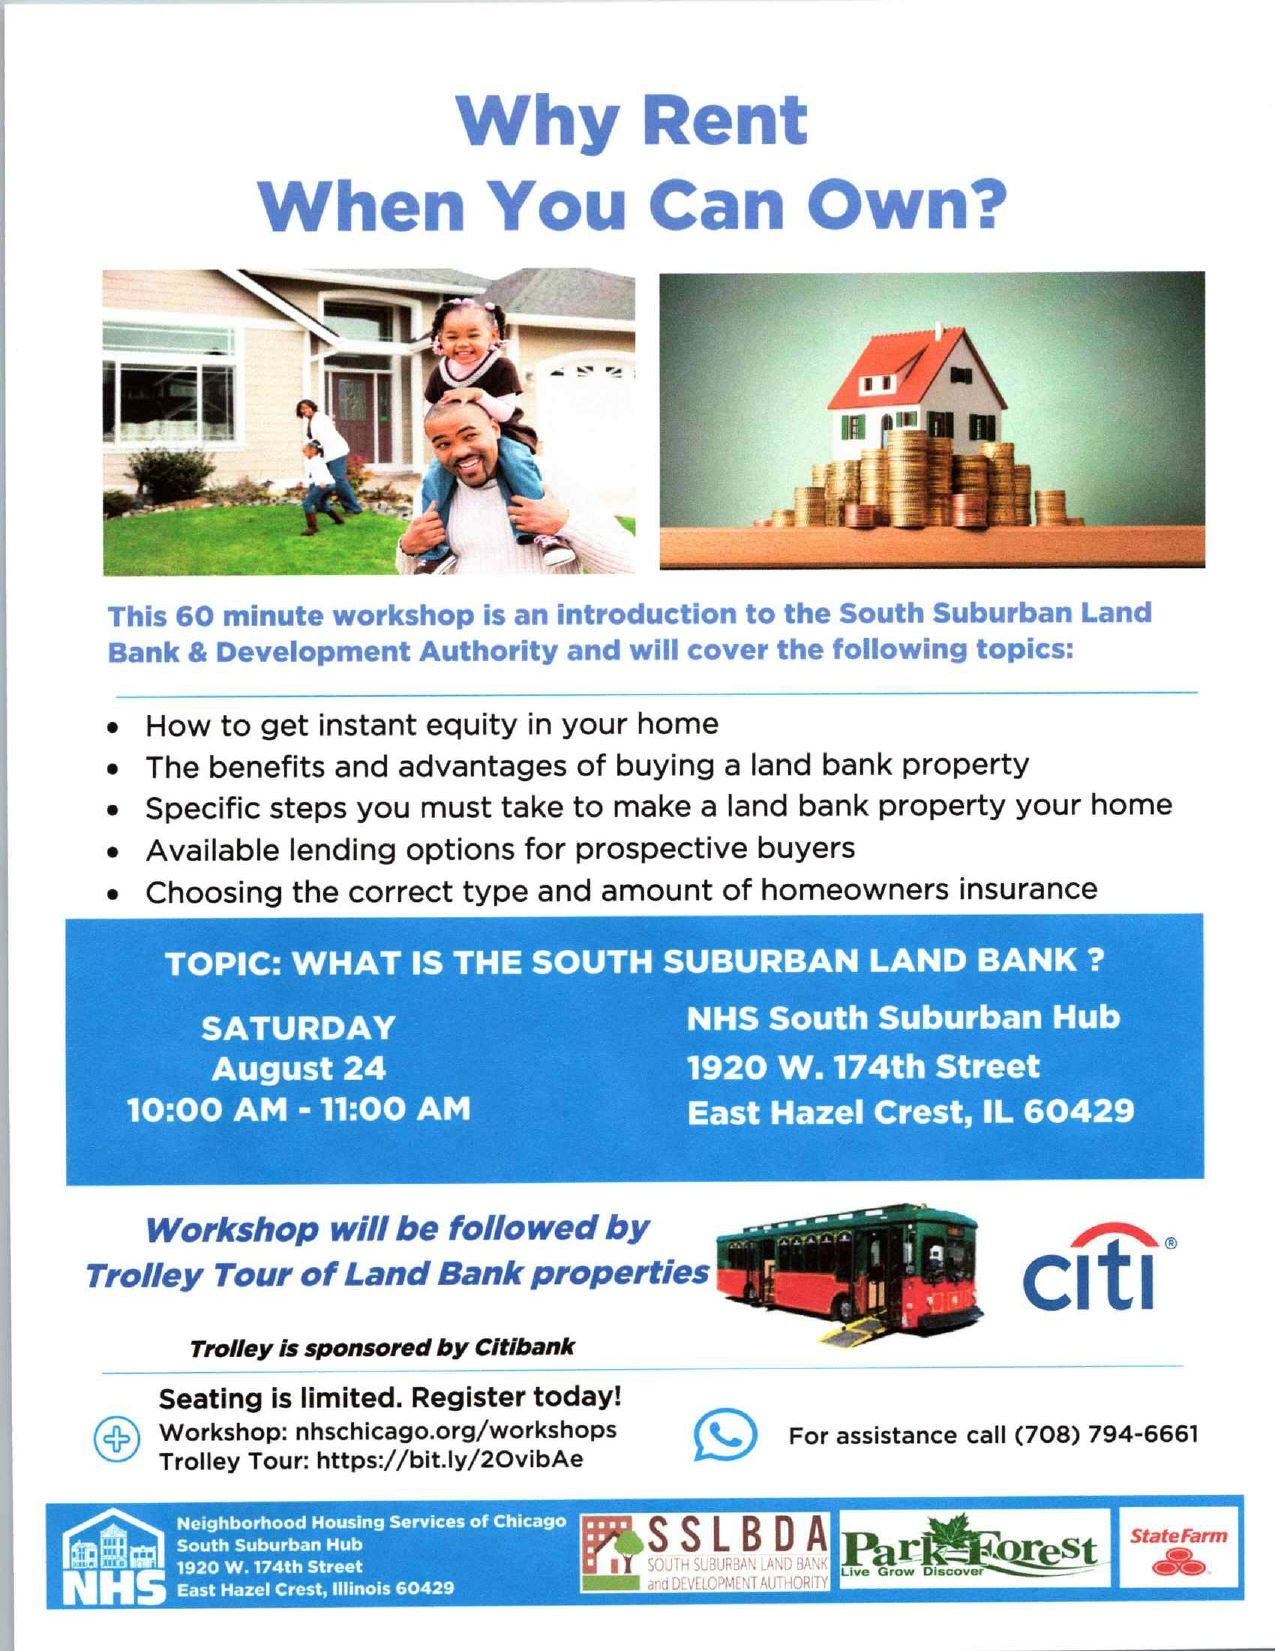 SSLBDA Home Buyer Trolley Tour